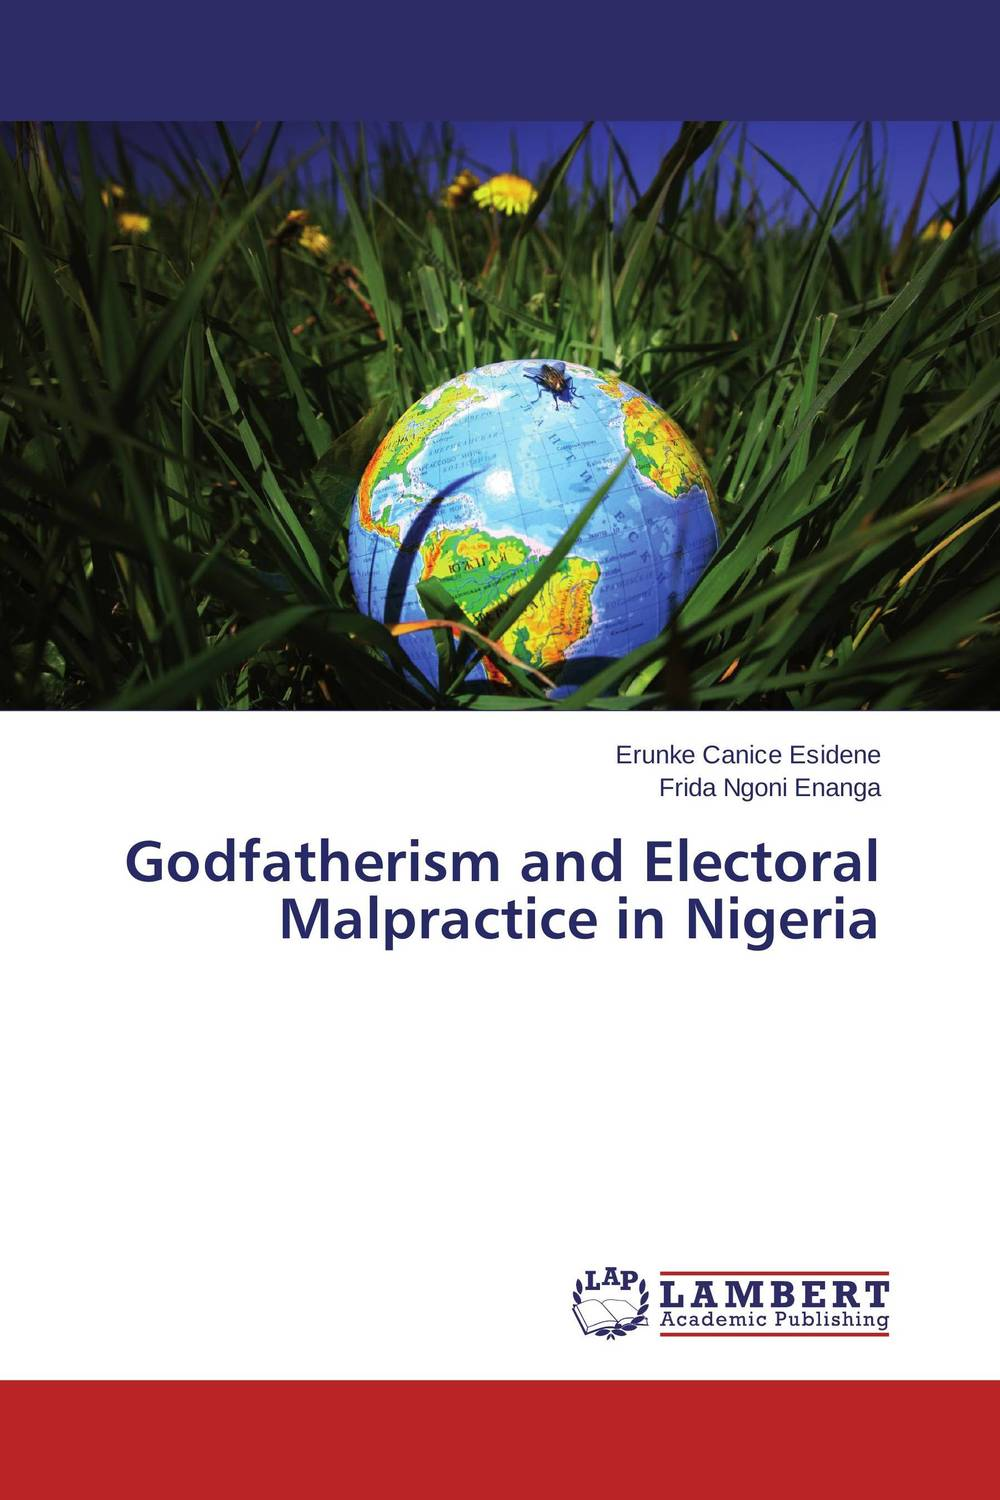 Godfatherism and Electoral Malpractice in Nigeria i must succeed